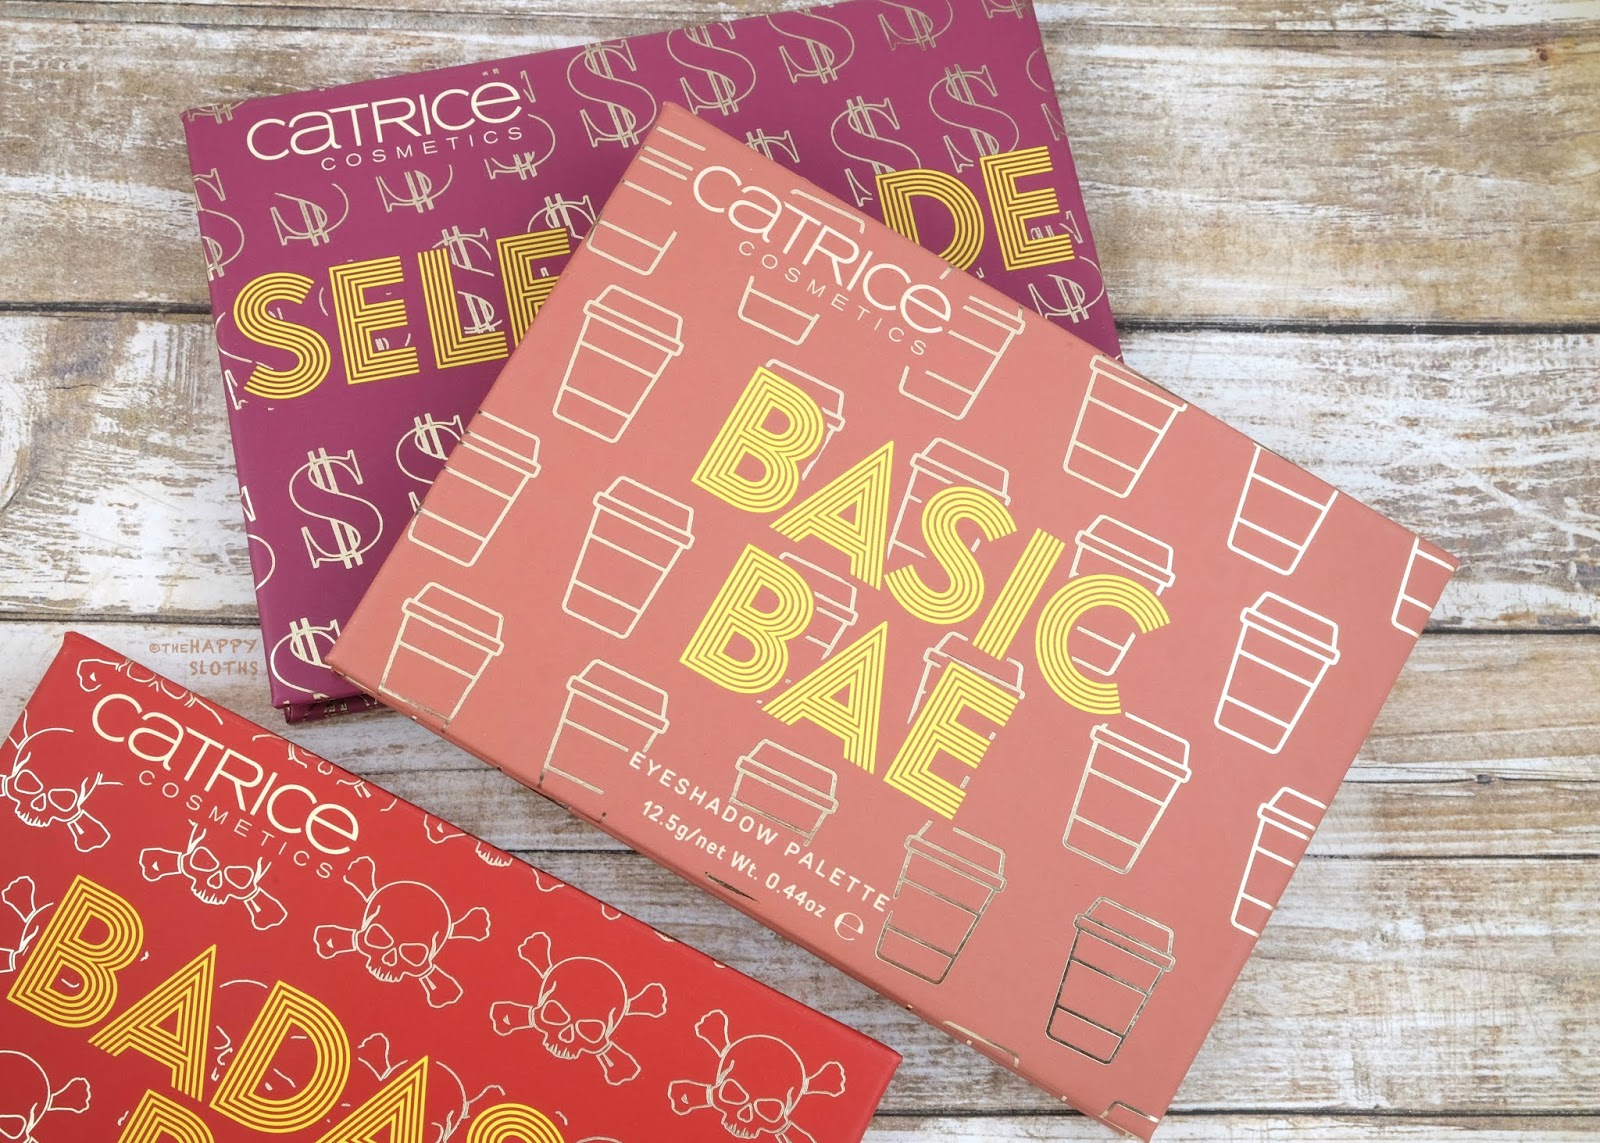 Catrice | Basic Bae, Badass Bae & Self-Made Bae Eyeshadow Palettes: Review and Swatches